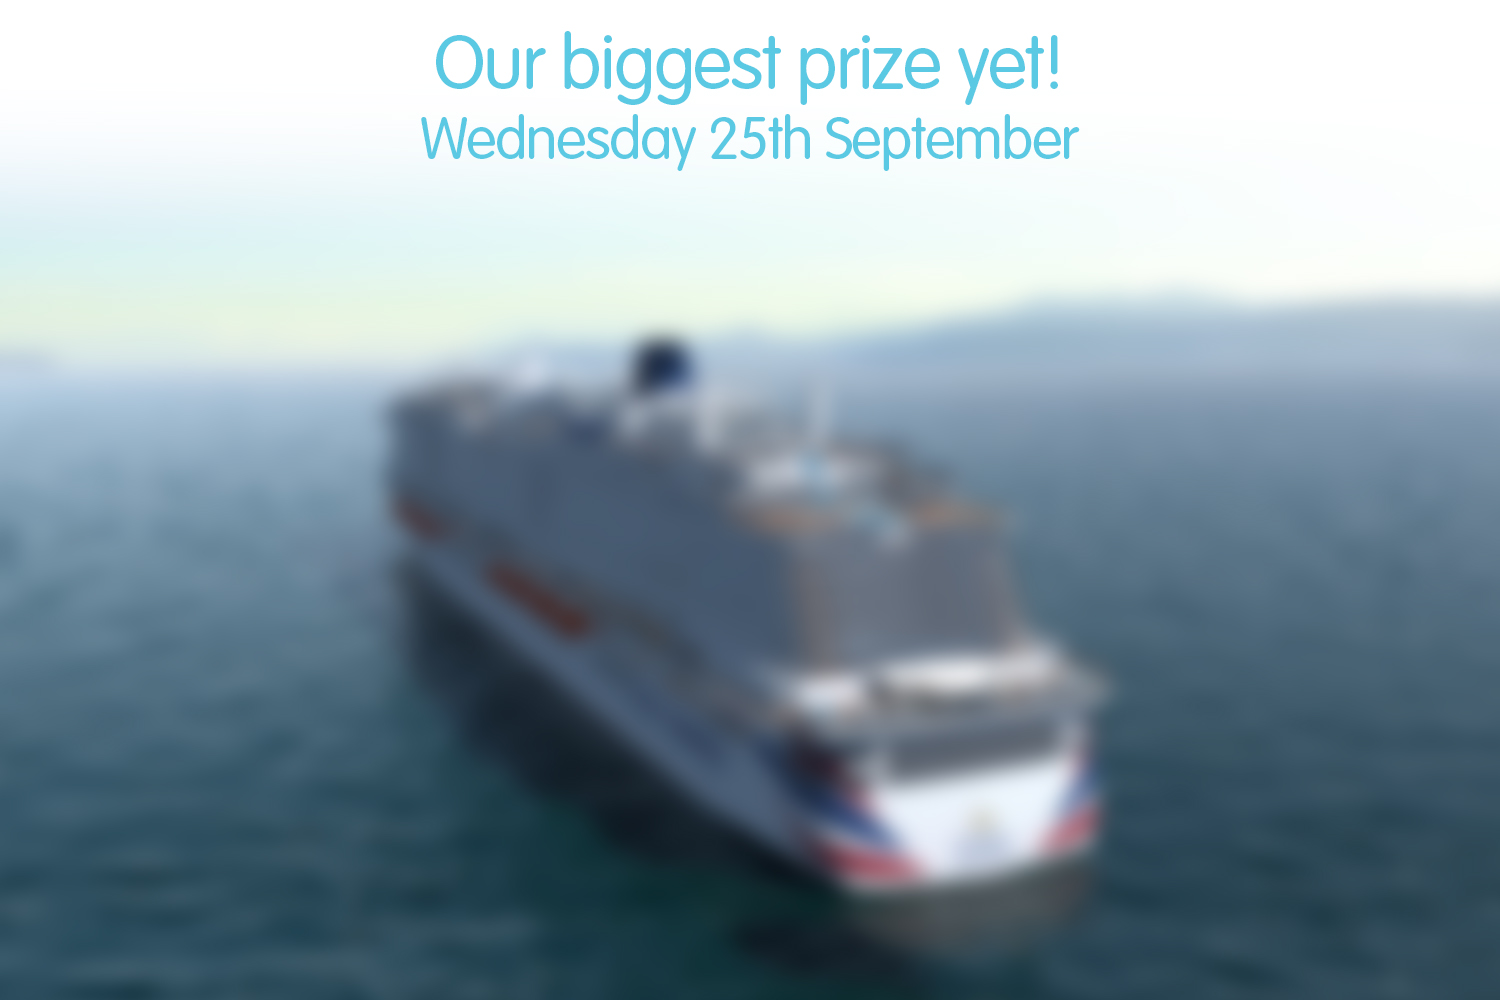 Our biggest prize yet!